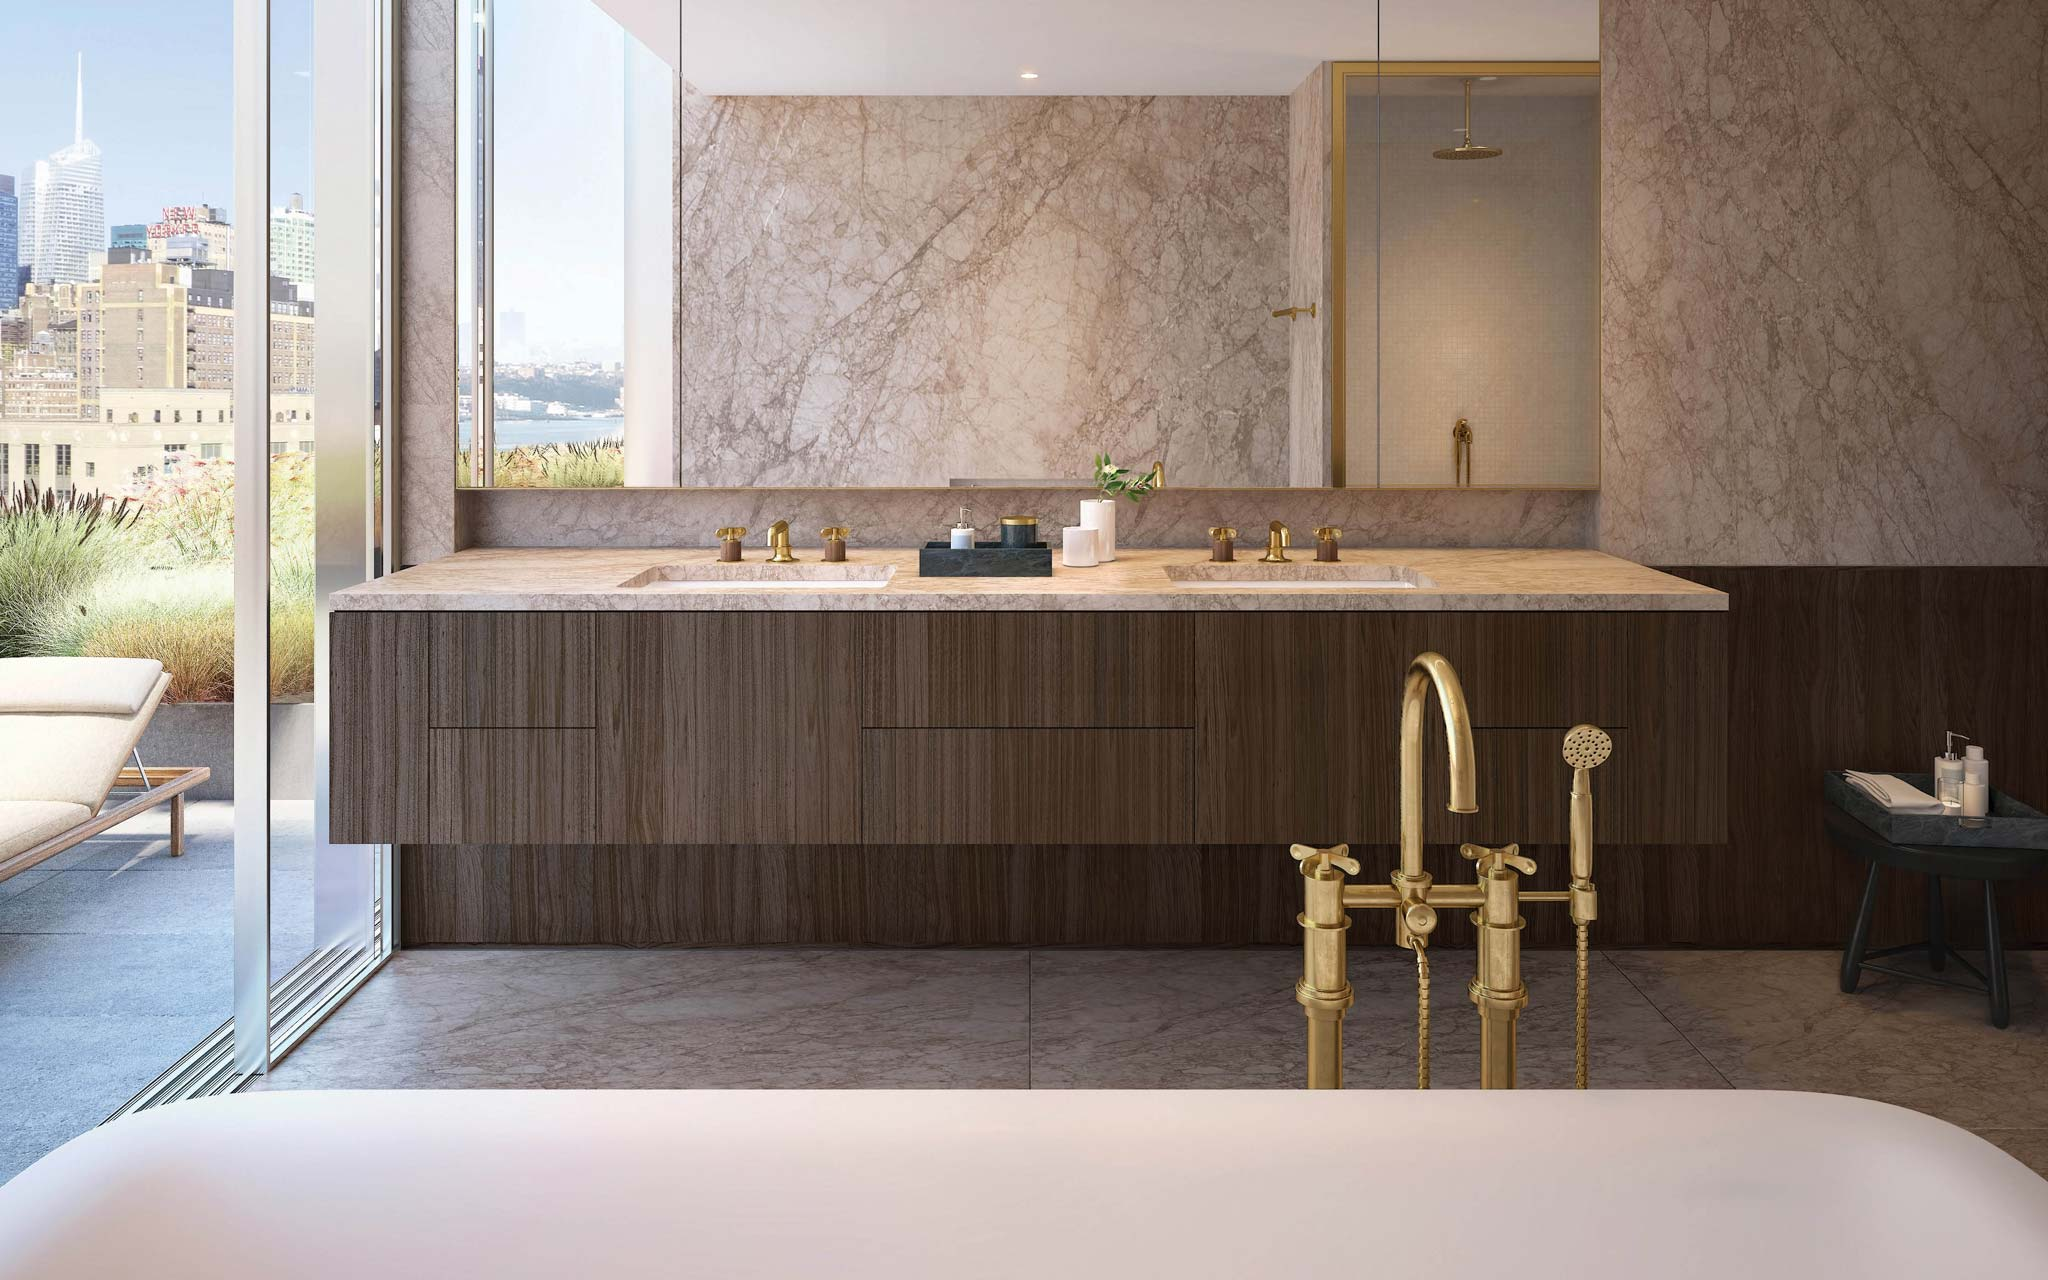 West Chelsea Condos: Master Bathroom